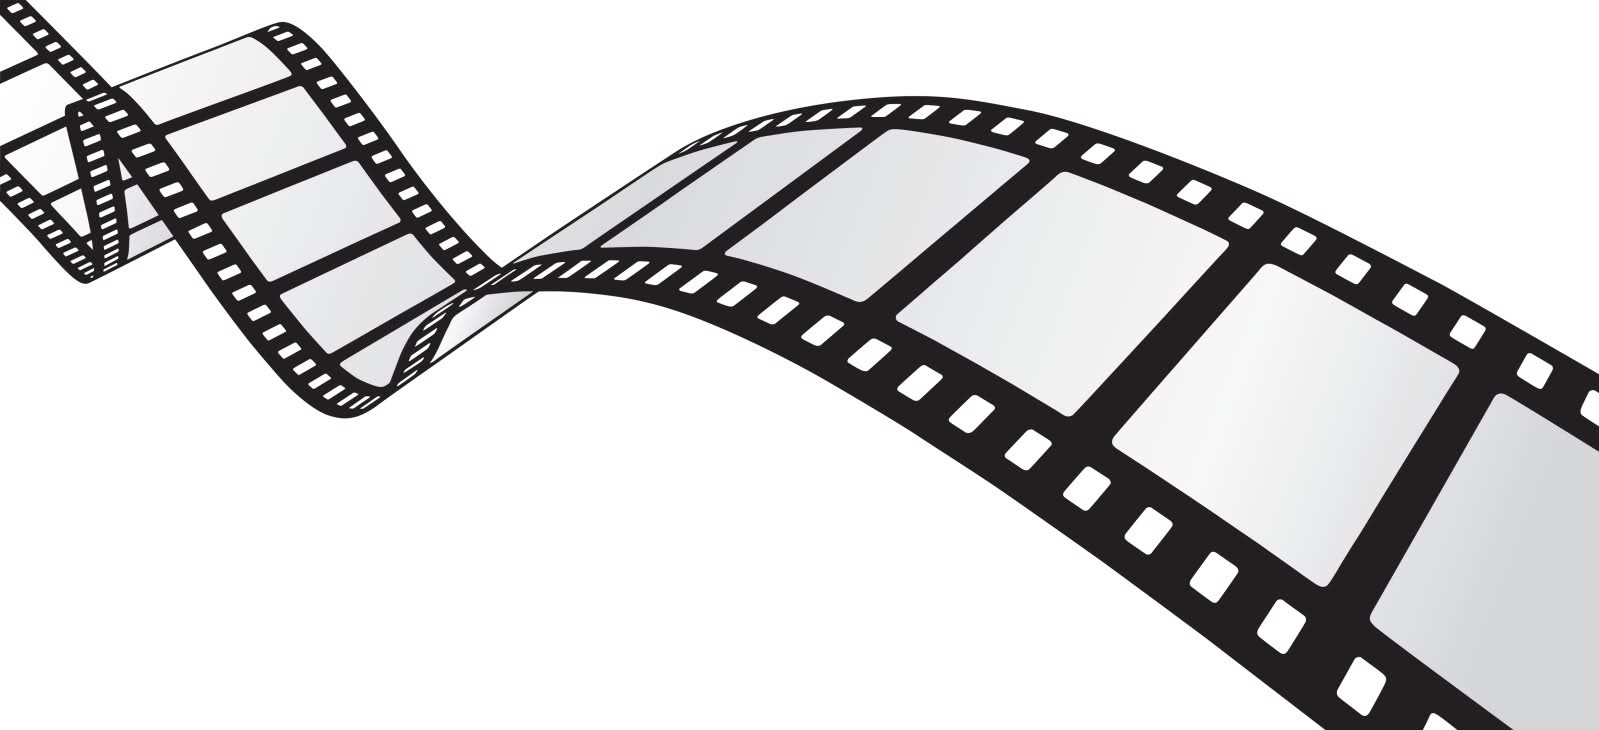 21 Film Reel Graphic Free Cliparts That You Can Download To You